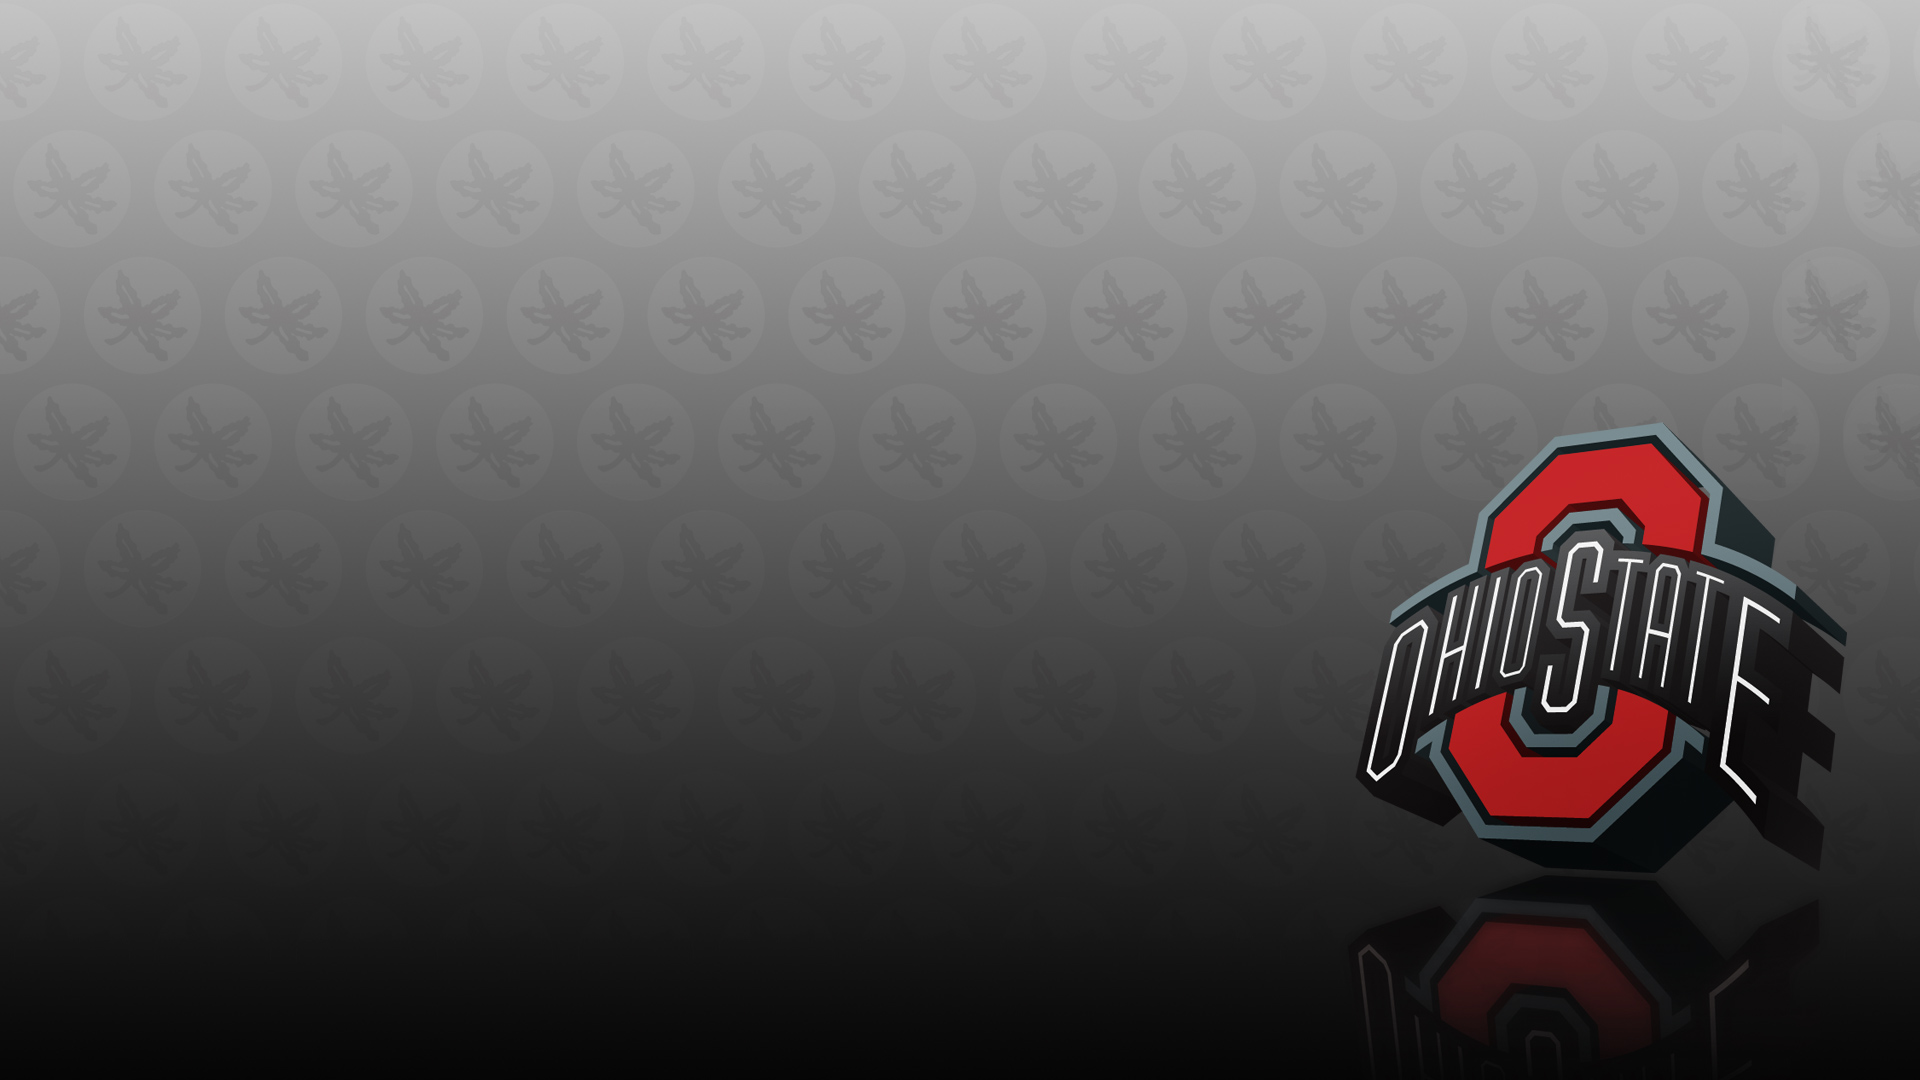 Ohio St Logo Wallpaper by Salvationalizm 1920 x 1080 1920x1080